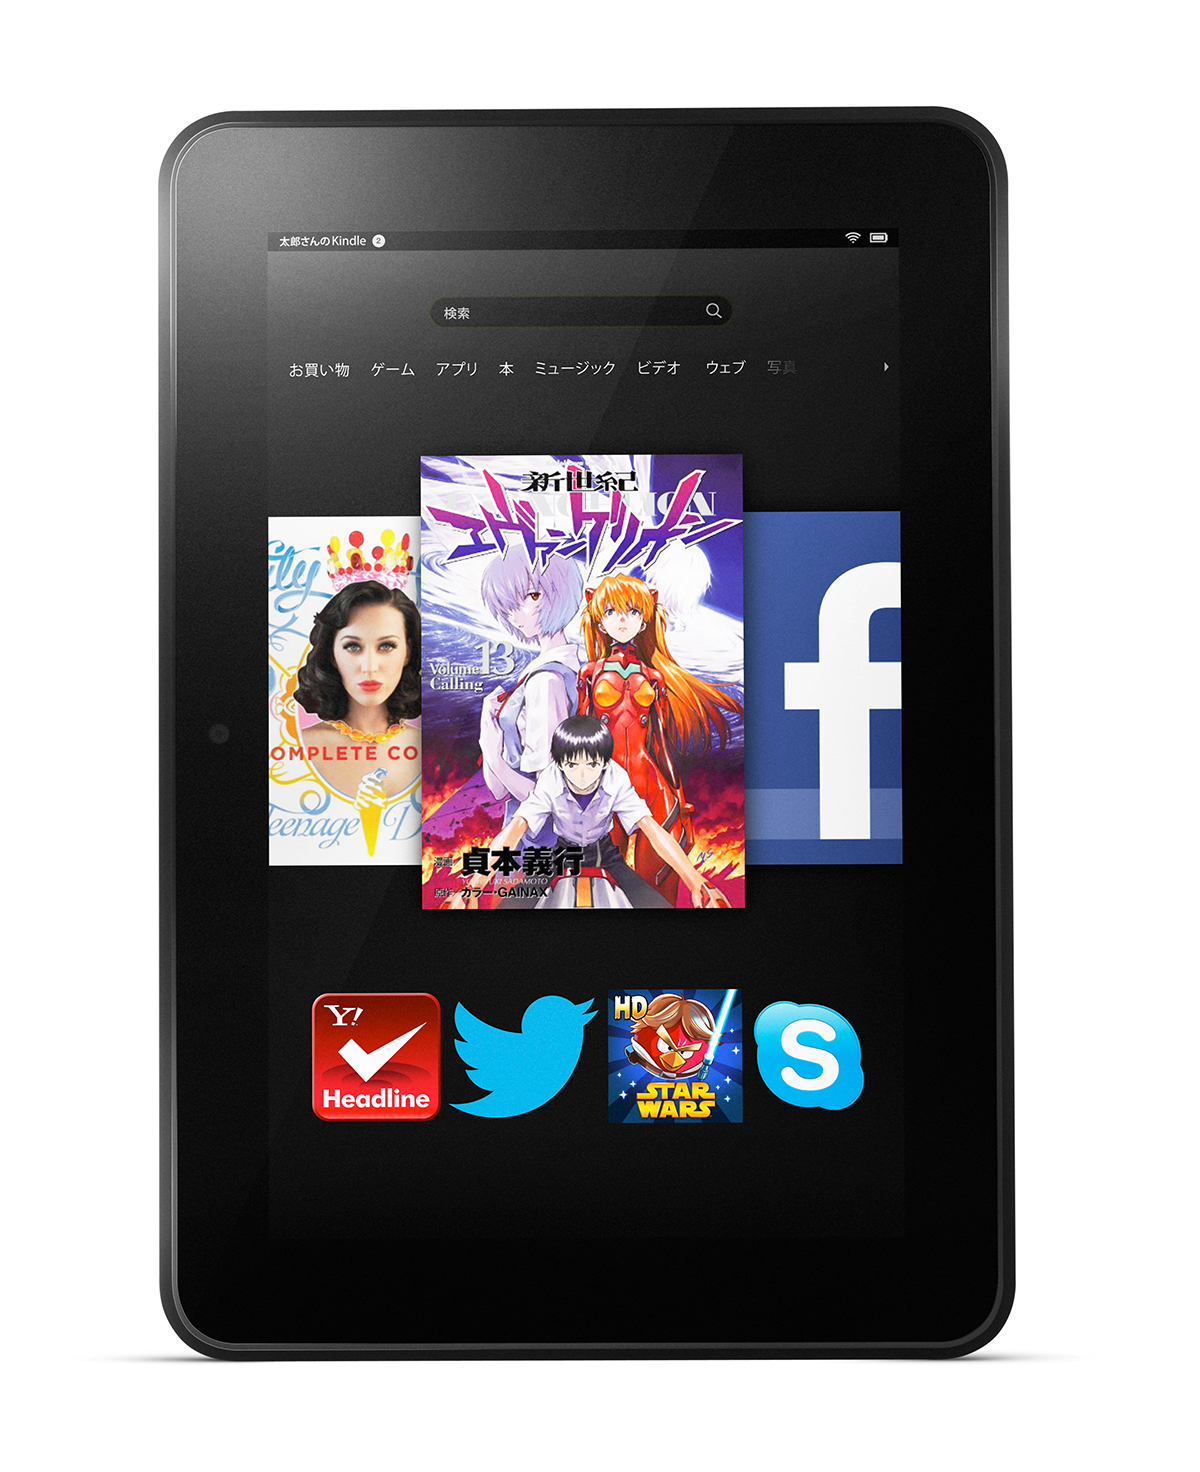 Although Wi-Fi only, the new Kindle Fire HD 8.9-inch is valid competition for the iPad mini.